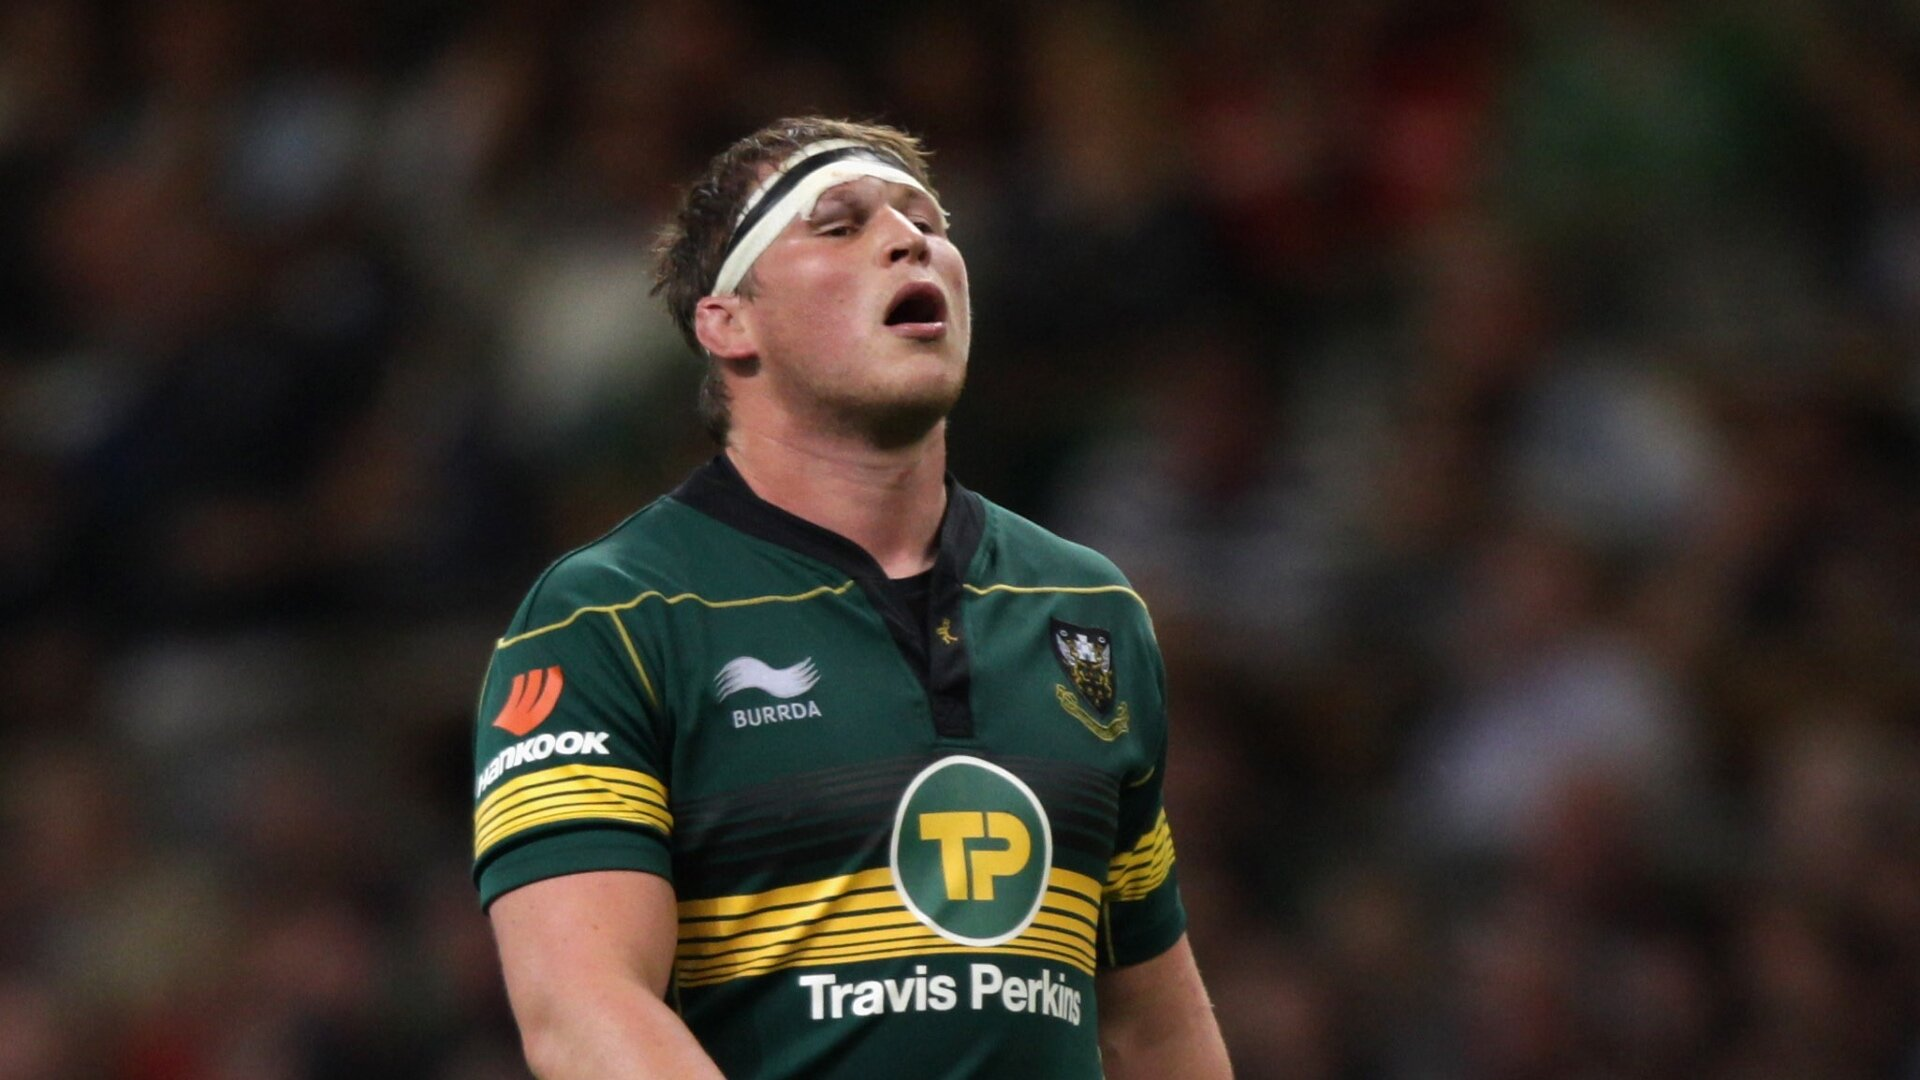 'I was sat in the toilet and had an emotional breakdown': Hartley's nightmare Champions Cup final concussion